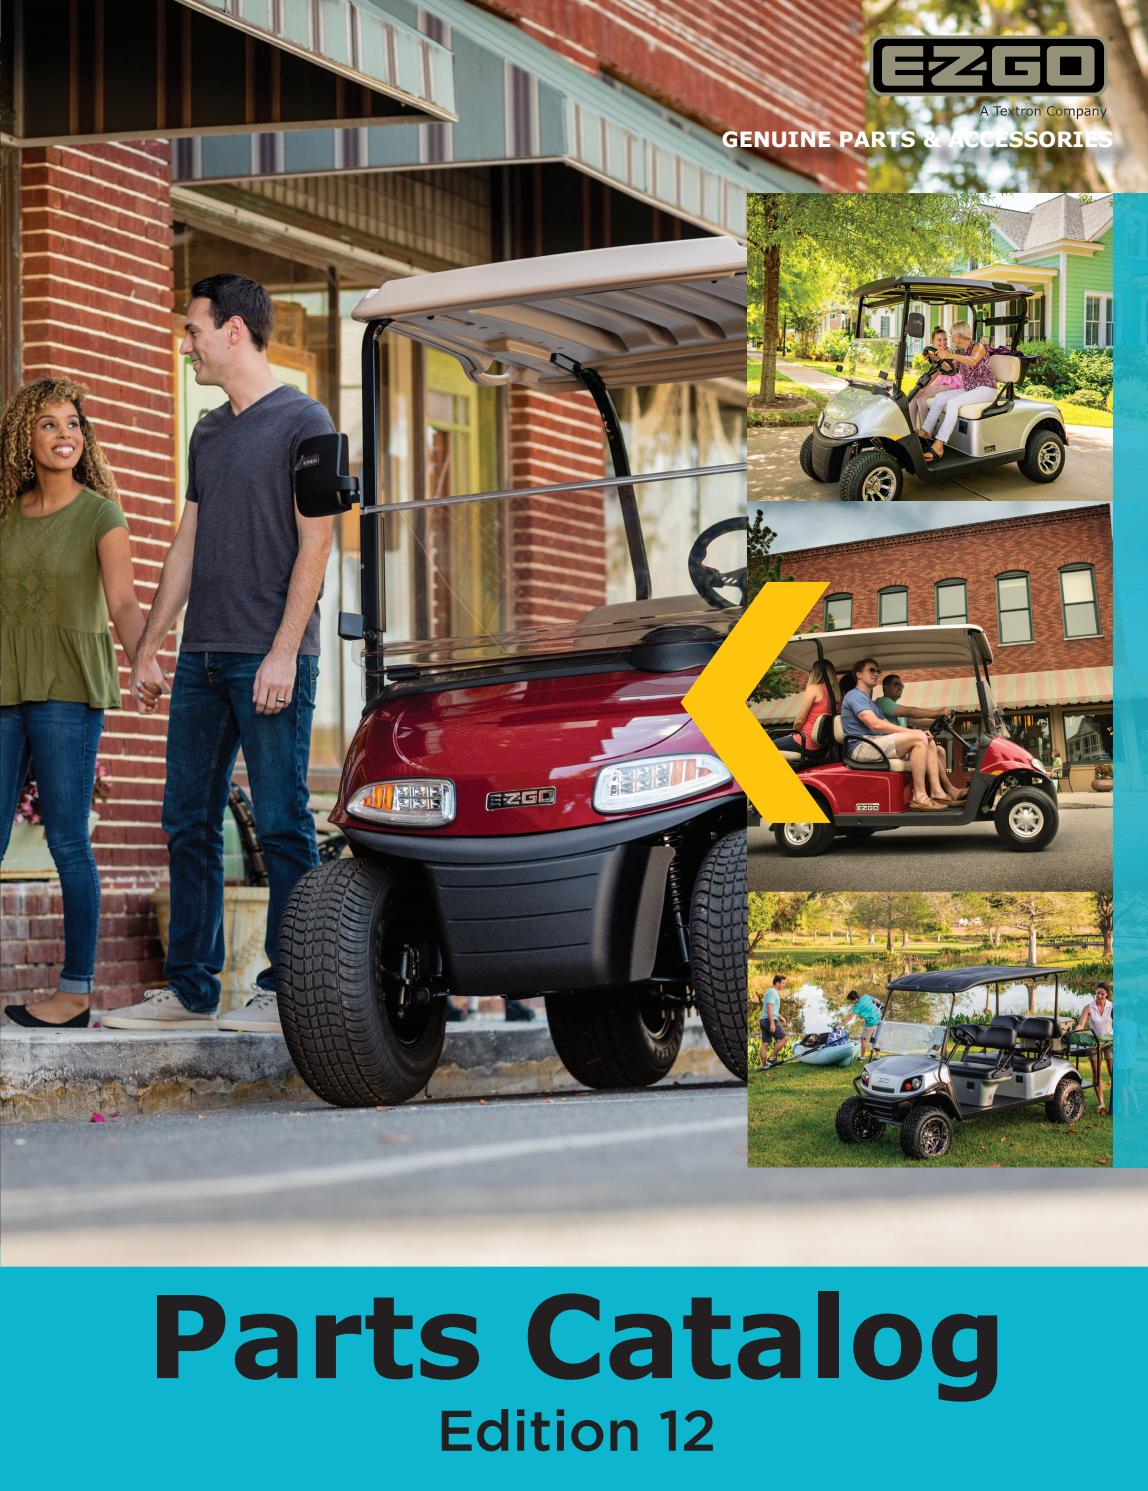 99 ezgo gas wiring diagram 12th edition e z go parts catalog by tsv customer service issuu  12th edition e z go parts catalog by